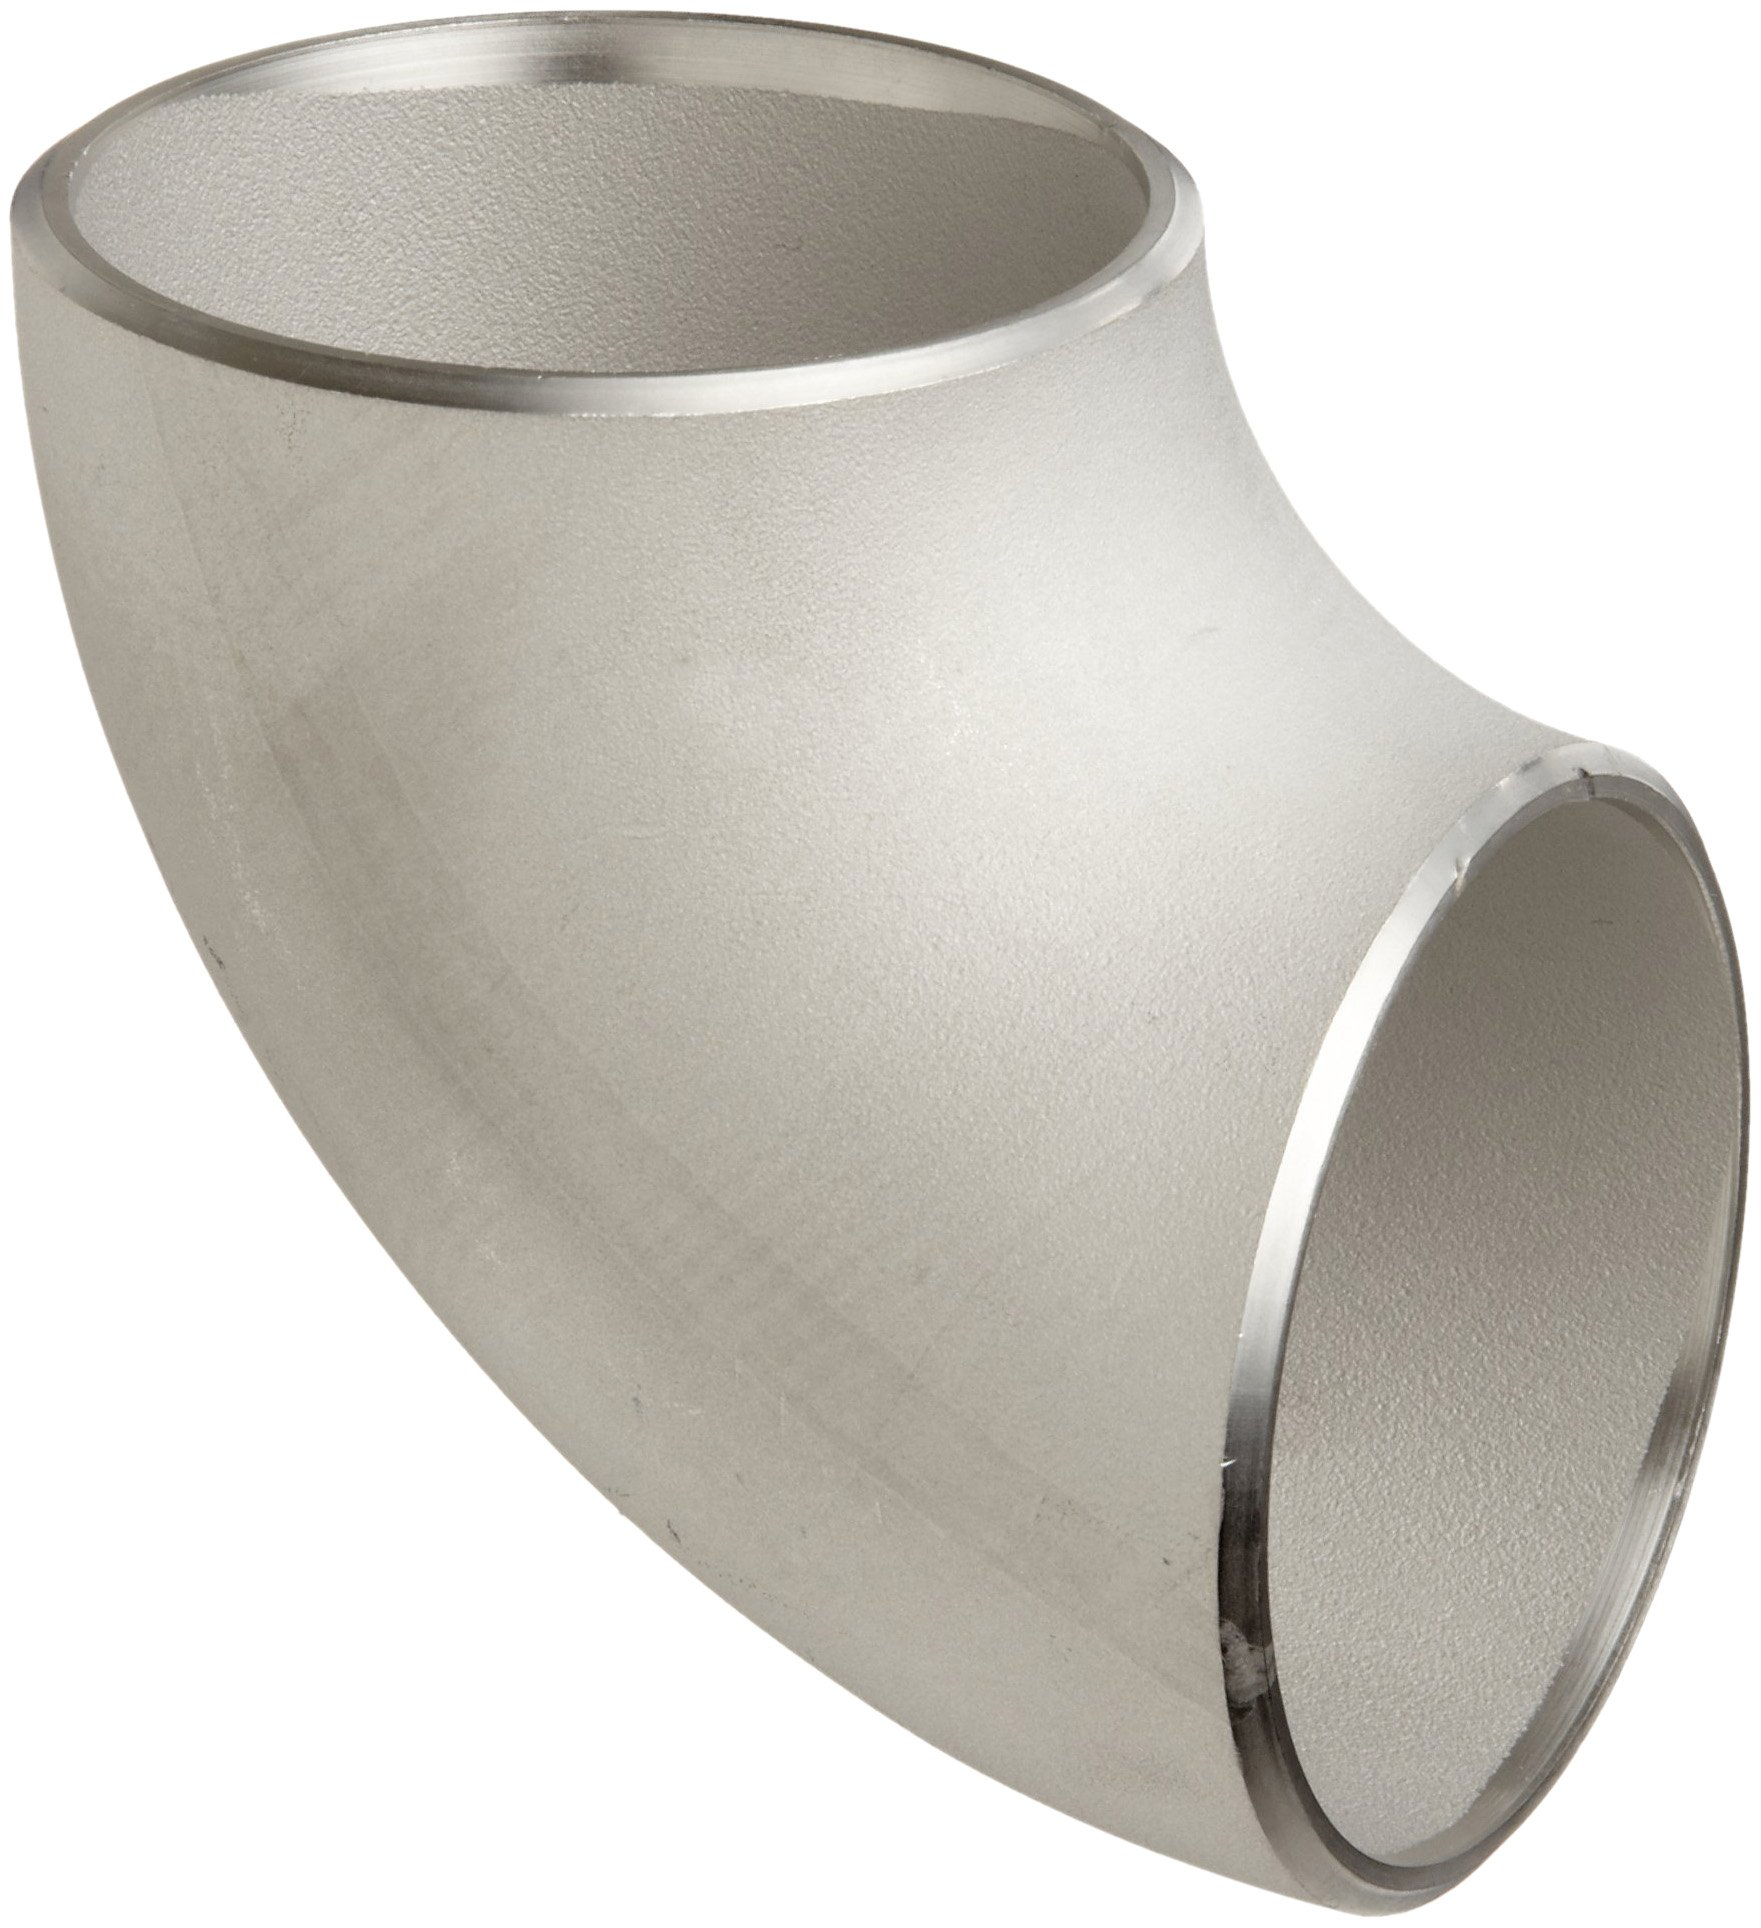 Stainless Steel 316/316L Butt-Weld Pipe Fitting, Short Radius 90 Degree Elbow, Schedule 10, 3'' Pipe Size